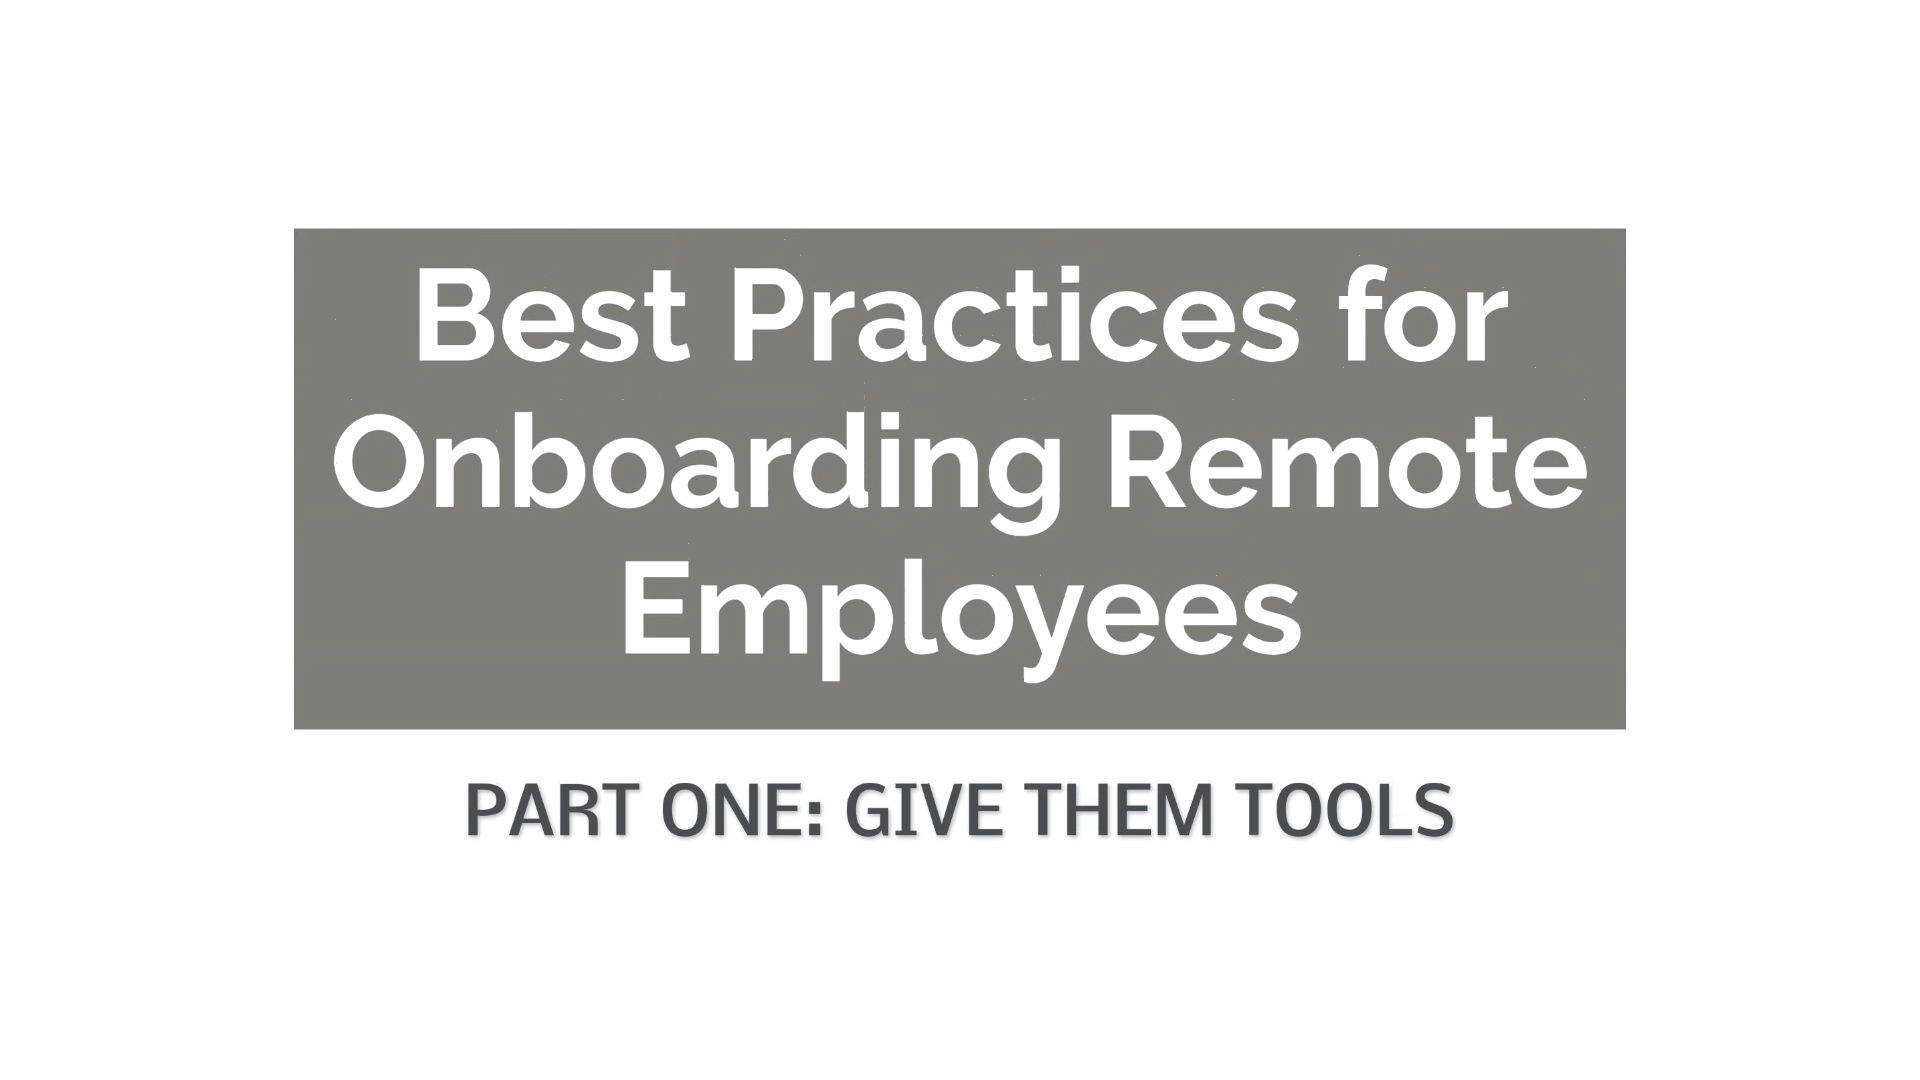 How do you onboard new employees remotely?